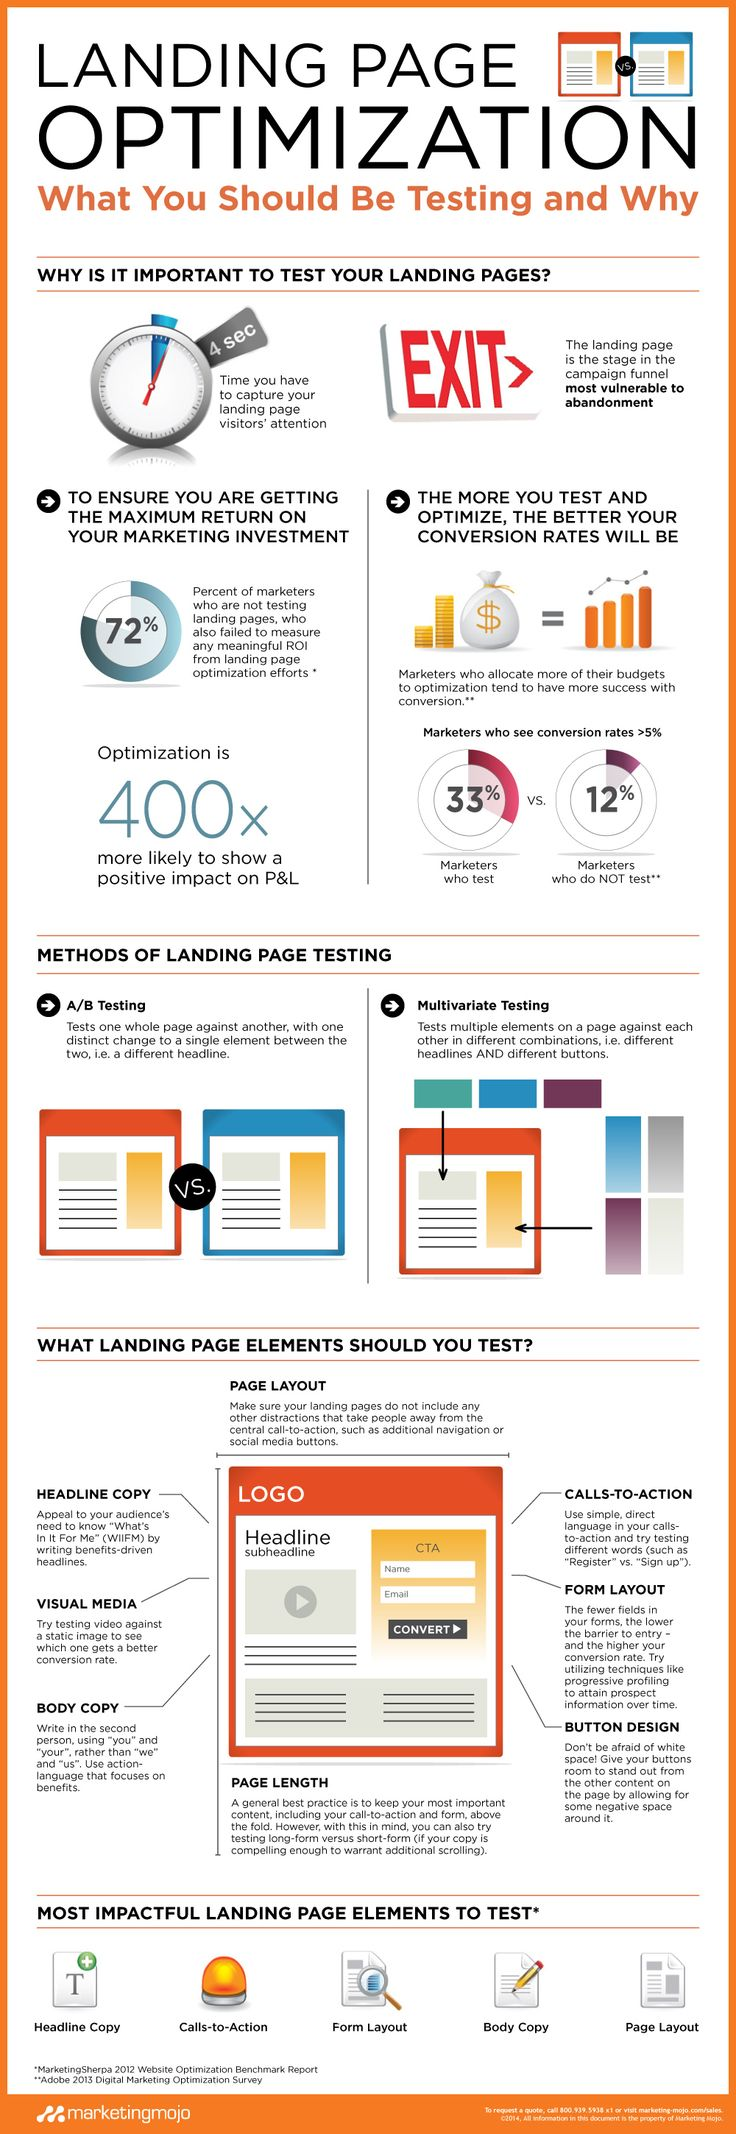 Use Landing Page Optimization To Increase First Party Leads Generated for Your Dealership - Automotive Digital Marketing ProCom